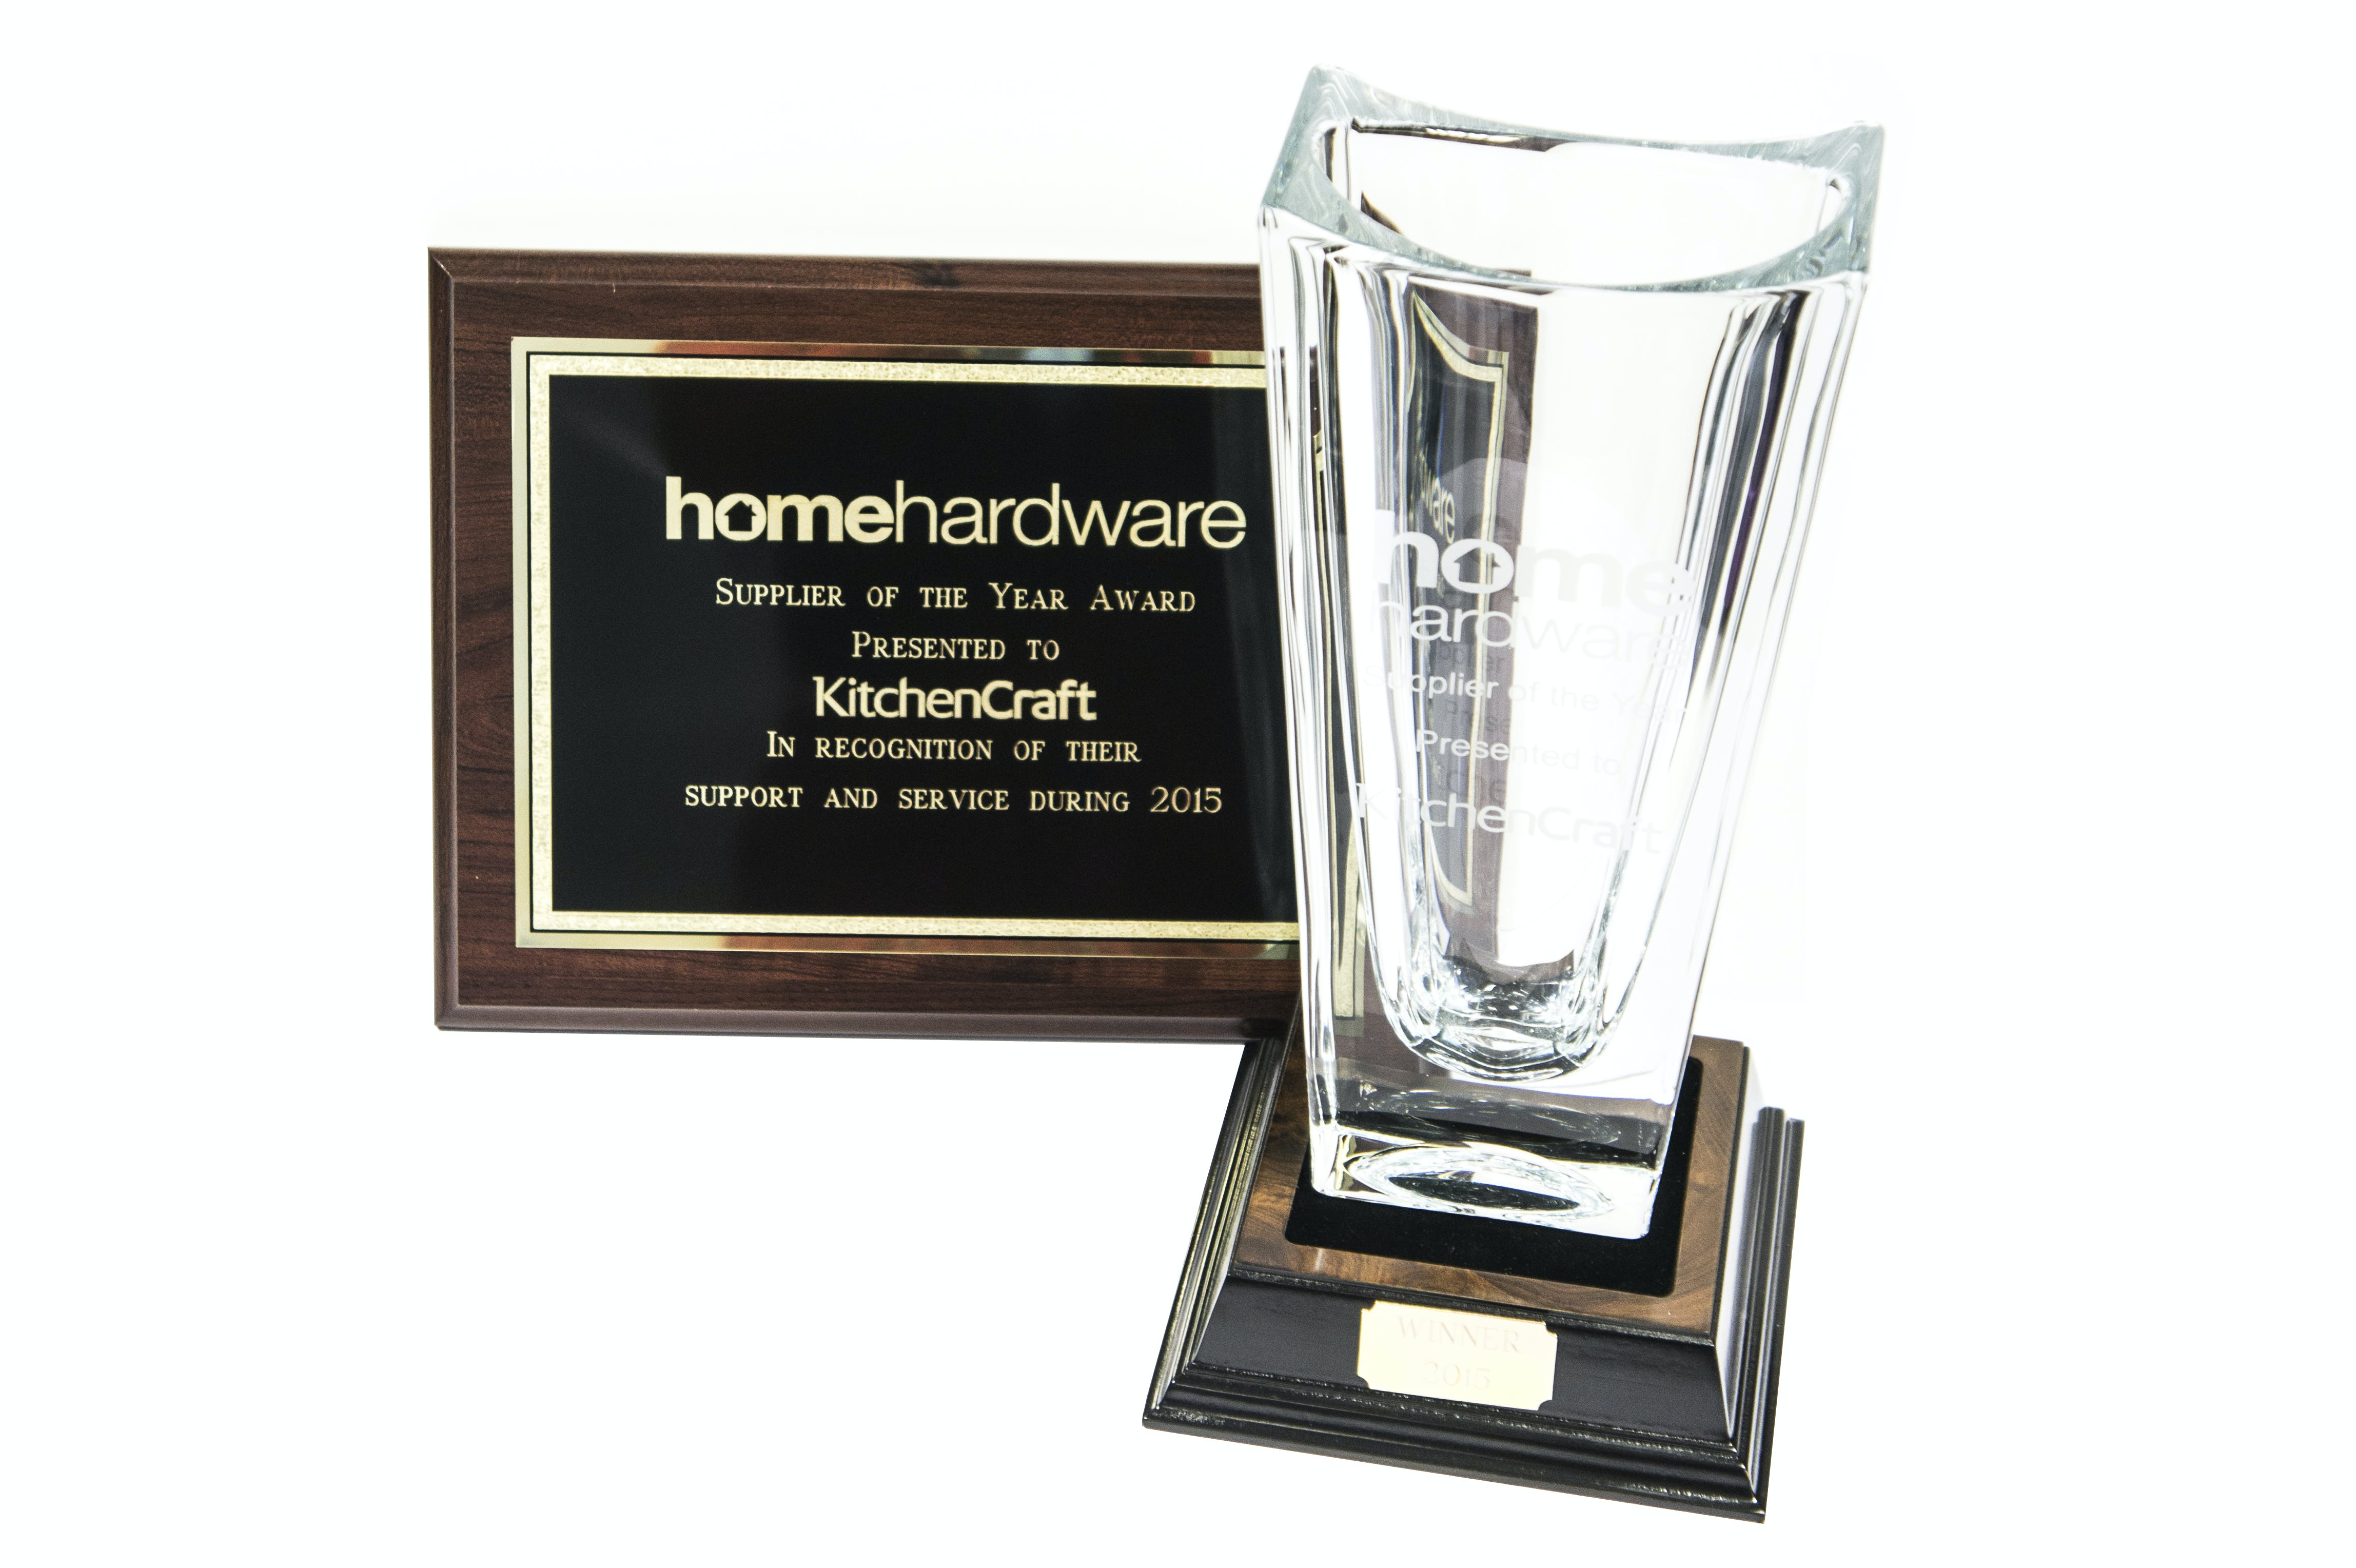 Home Hardware SUPPLIER of the YEAR 2015 award - Kitchen Craft winner